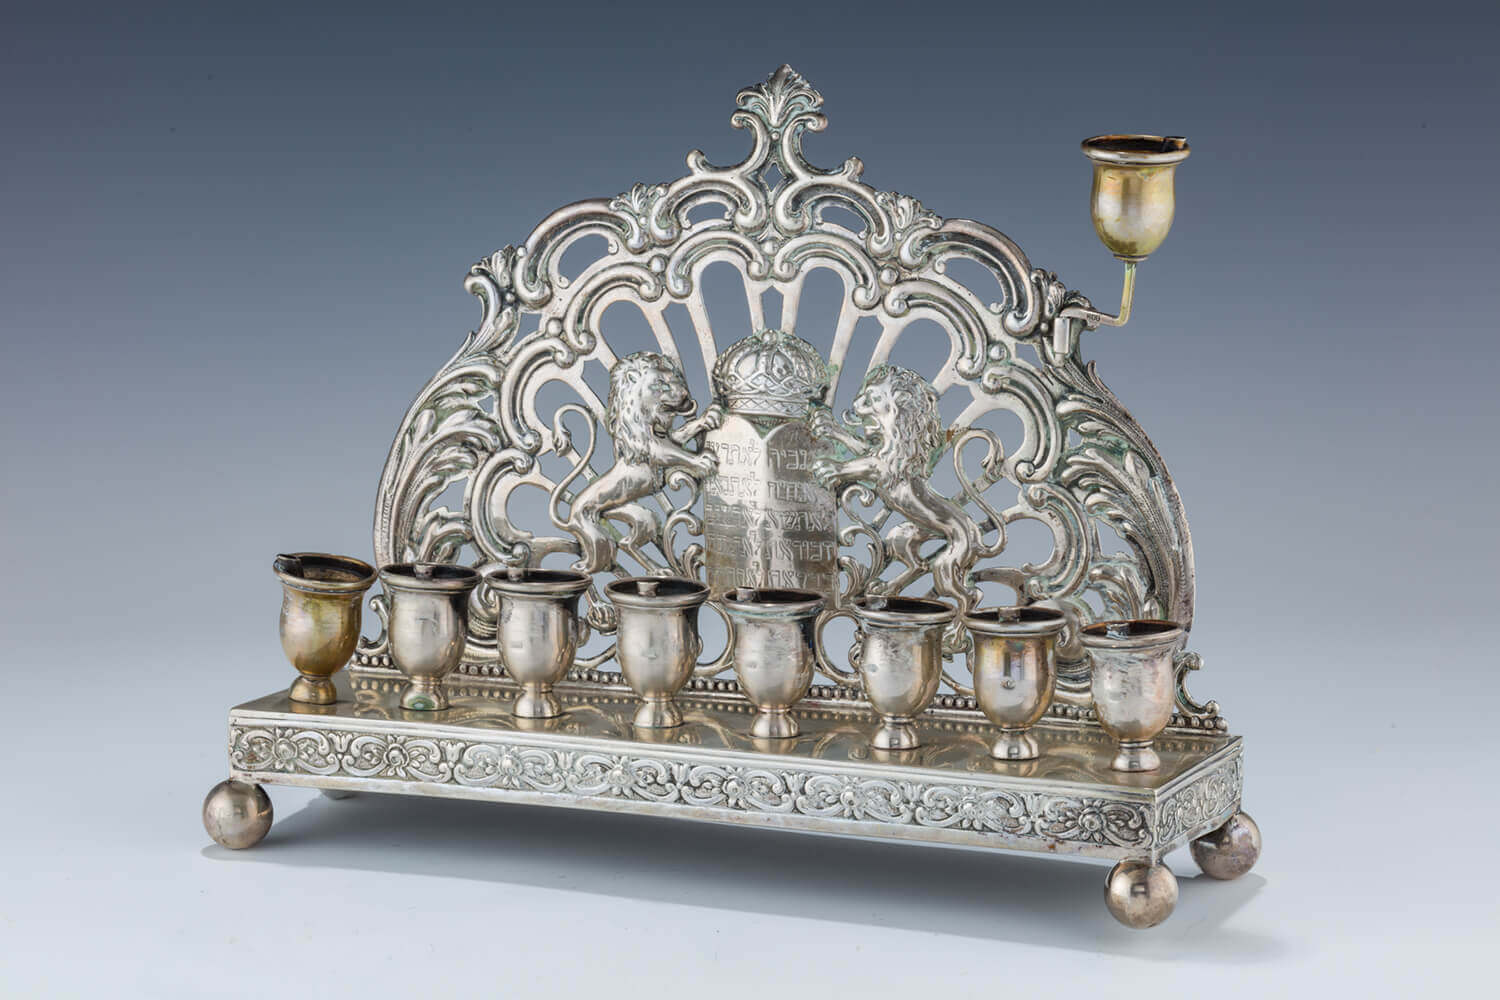 088. AN UNUSUAL SILVER HANUKKAH LAMP